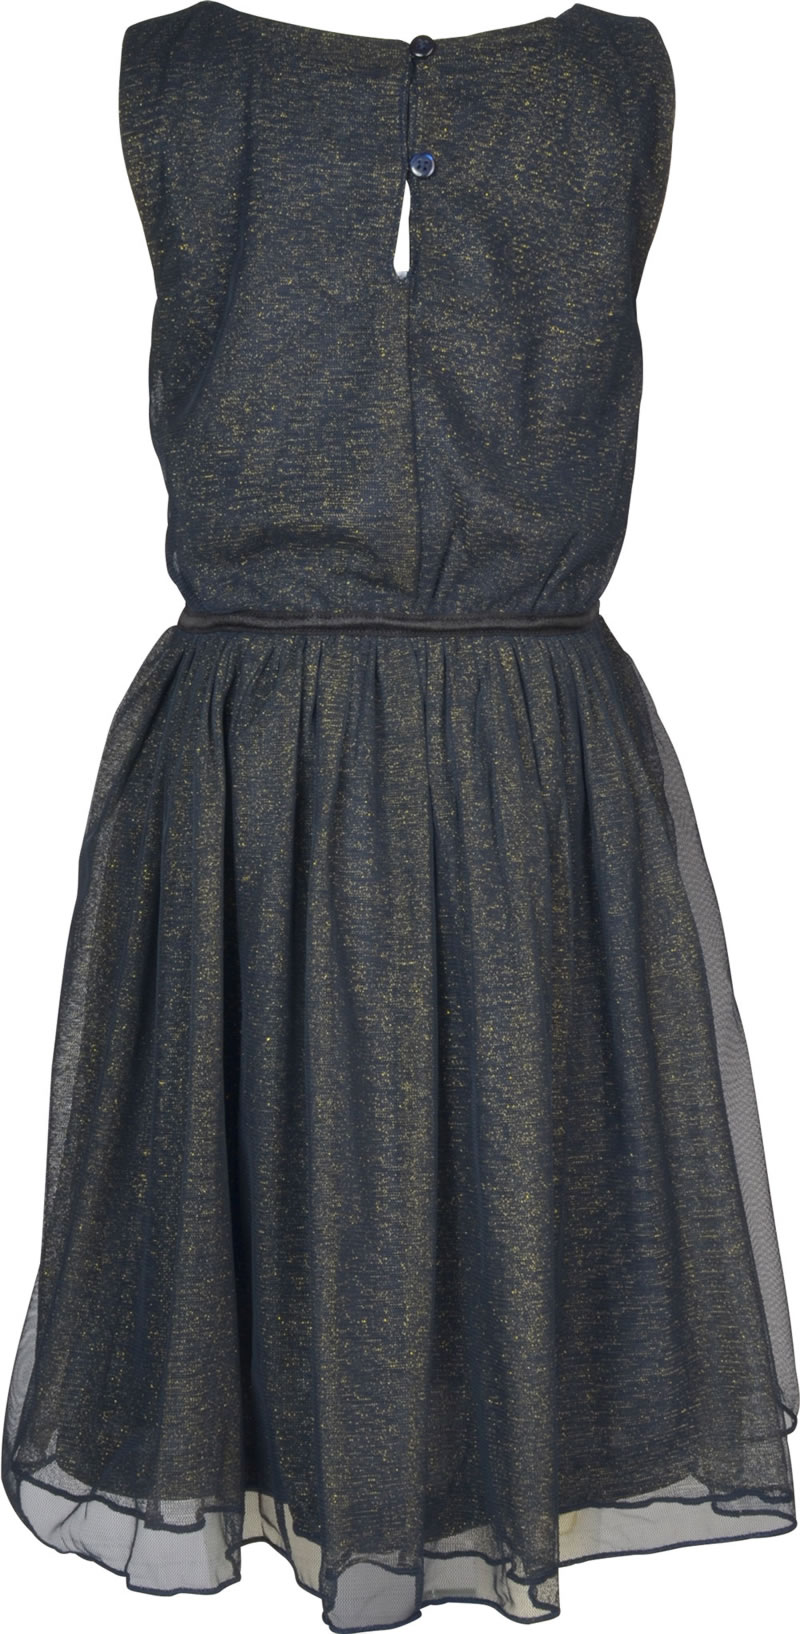 20b5c8381 Charming, festive dress in dark blue by NAME IT for girls. The sleeveless gown  dress consists of 3 layers, a dark blue underwear, a transparent tulle part  ...